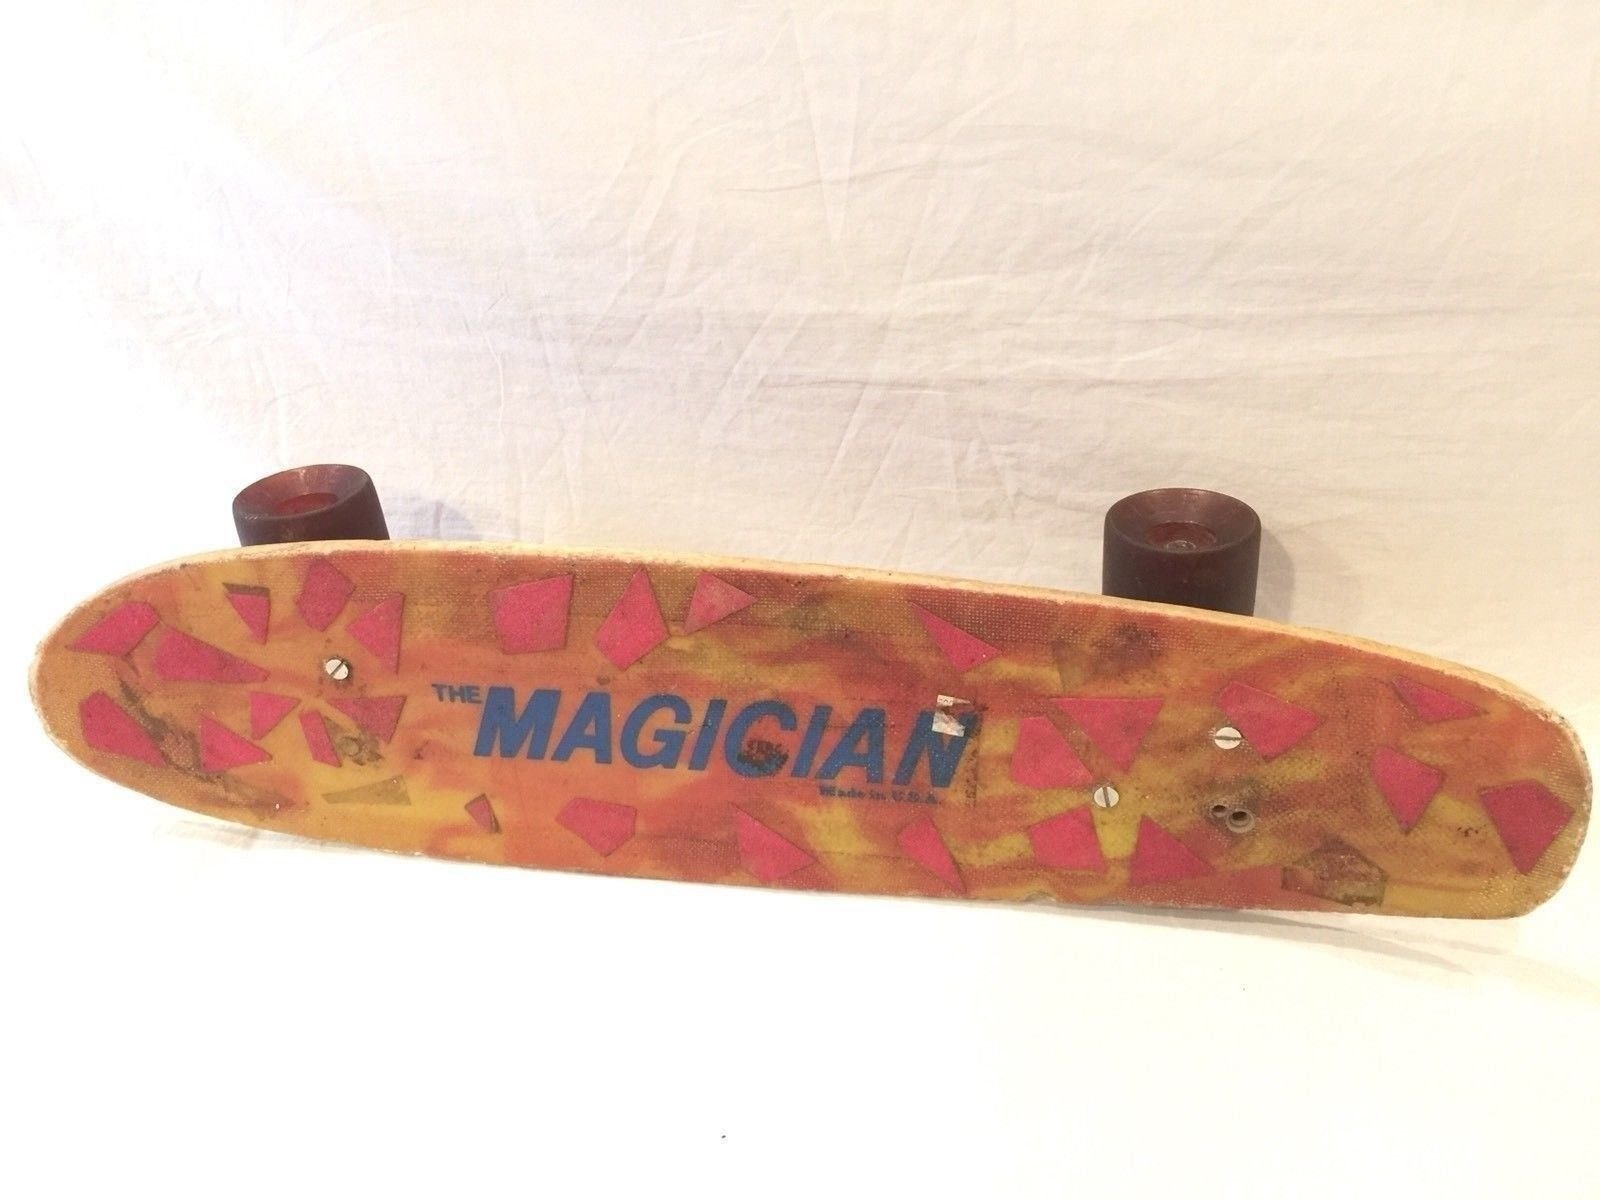 Road Rider The Magician Vintage Skateboard With 4 Wheels ACS-430 Nash Trucks USA by Road Rider